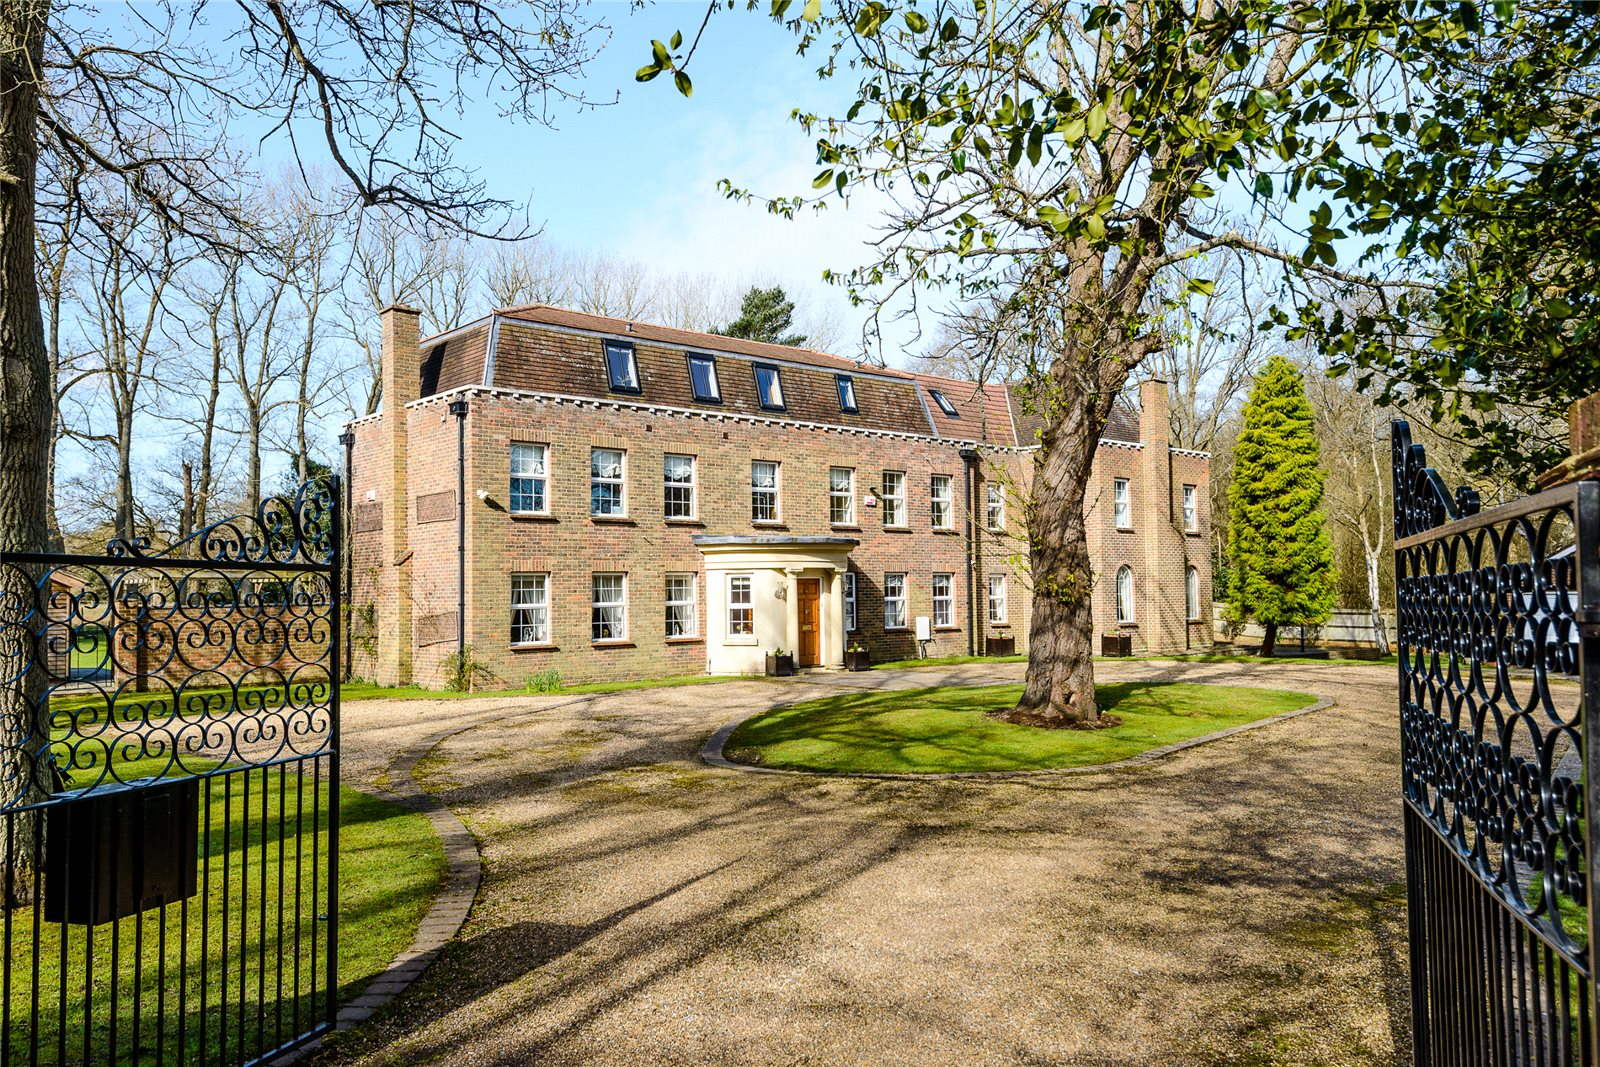 Single Family Home for Sale at Coombe Lane, Ascot, Berkshire, SL5 Ascot, England